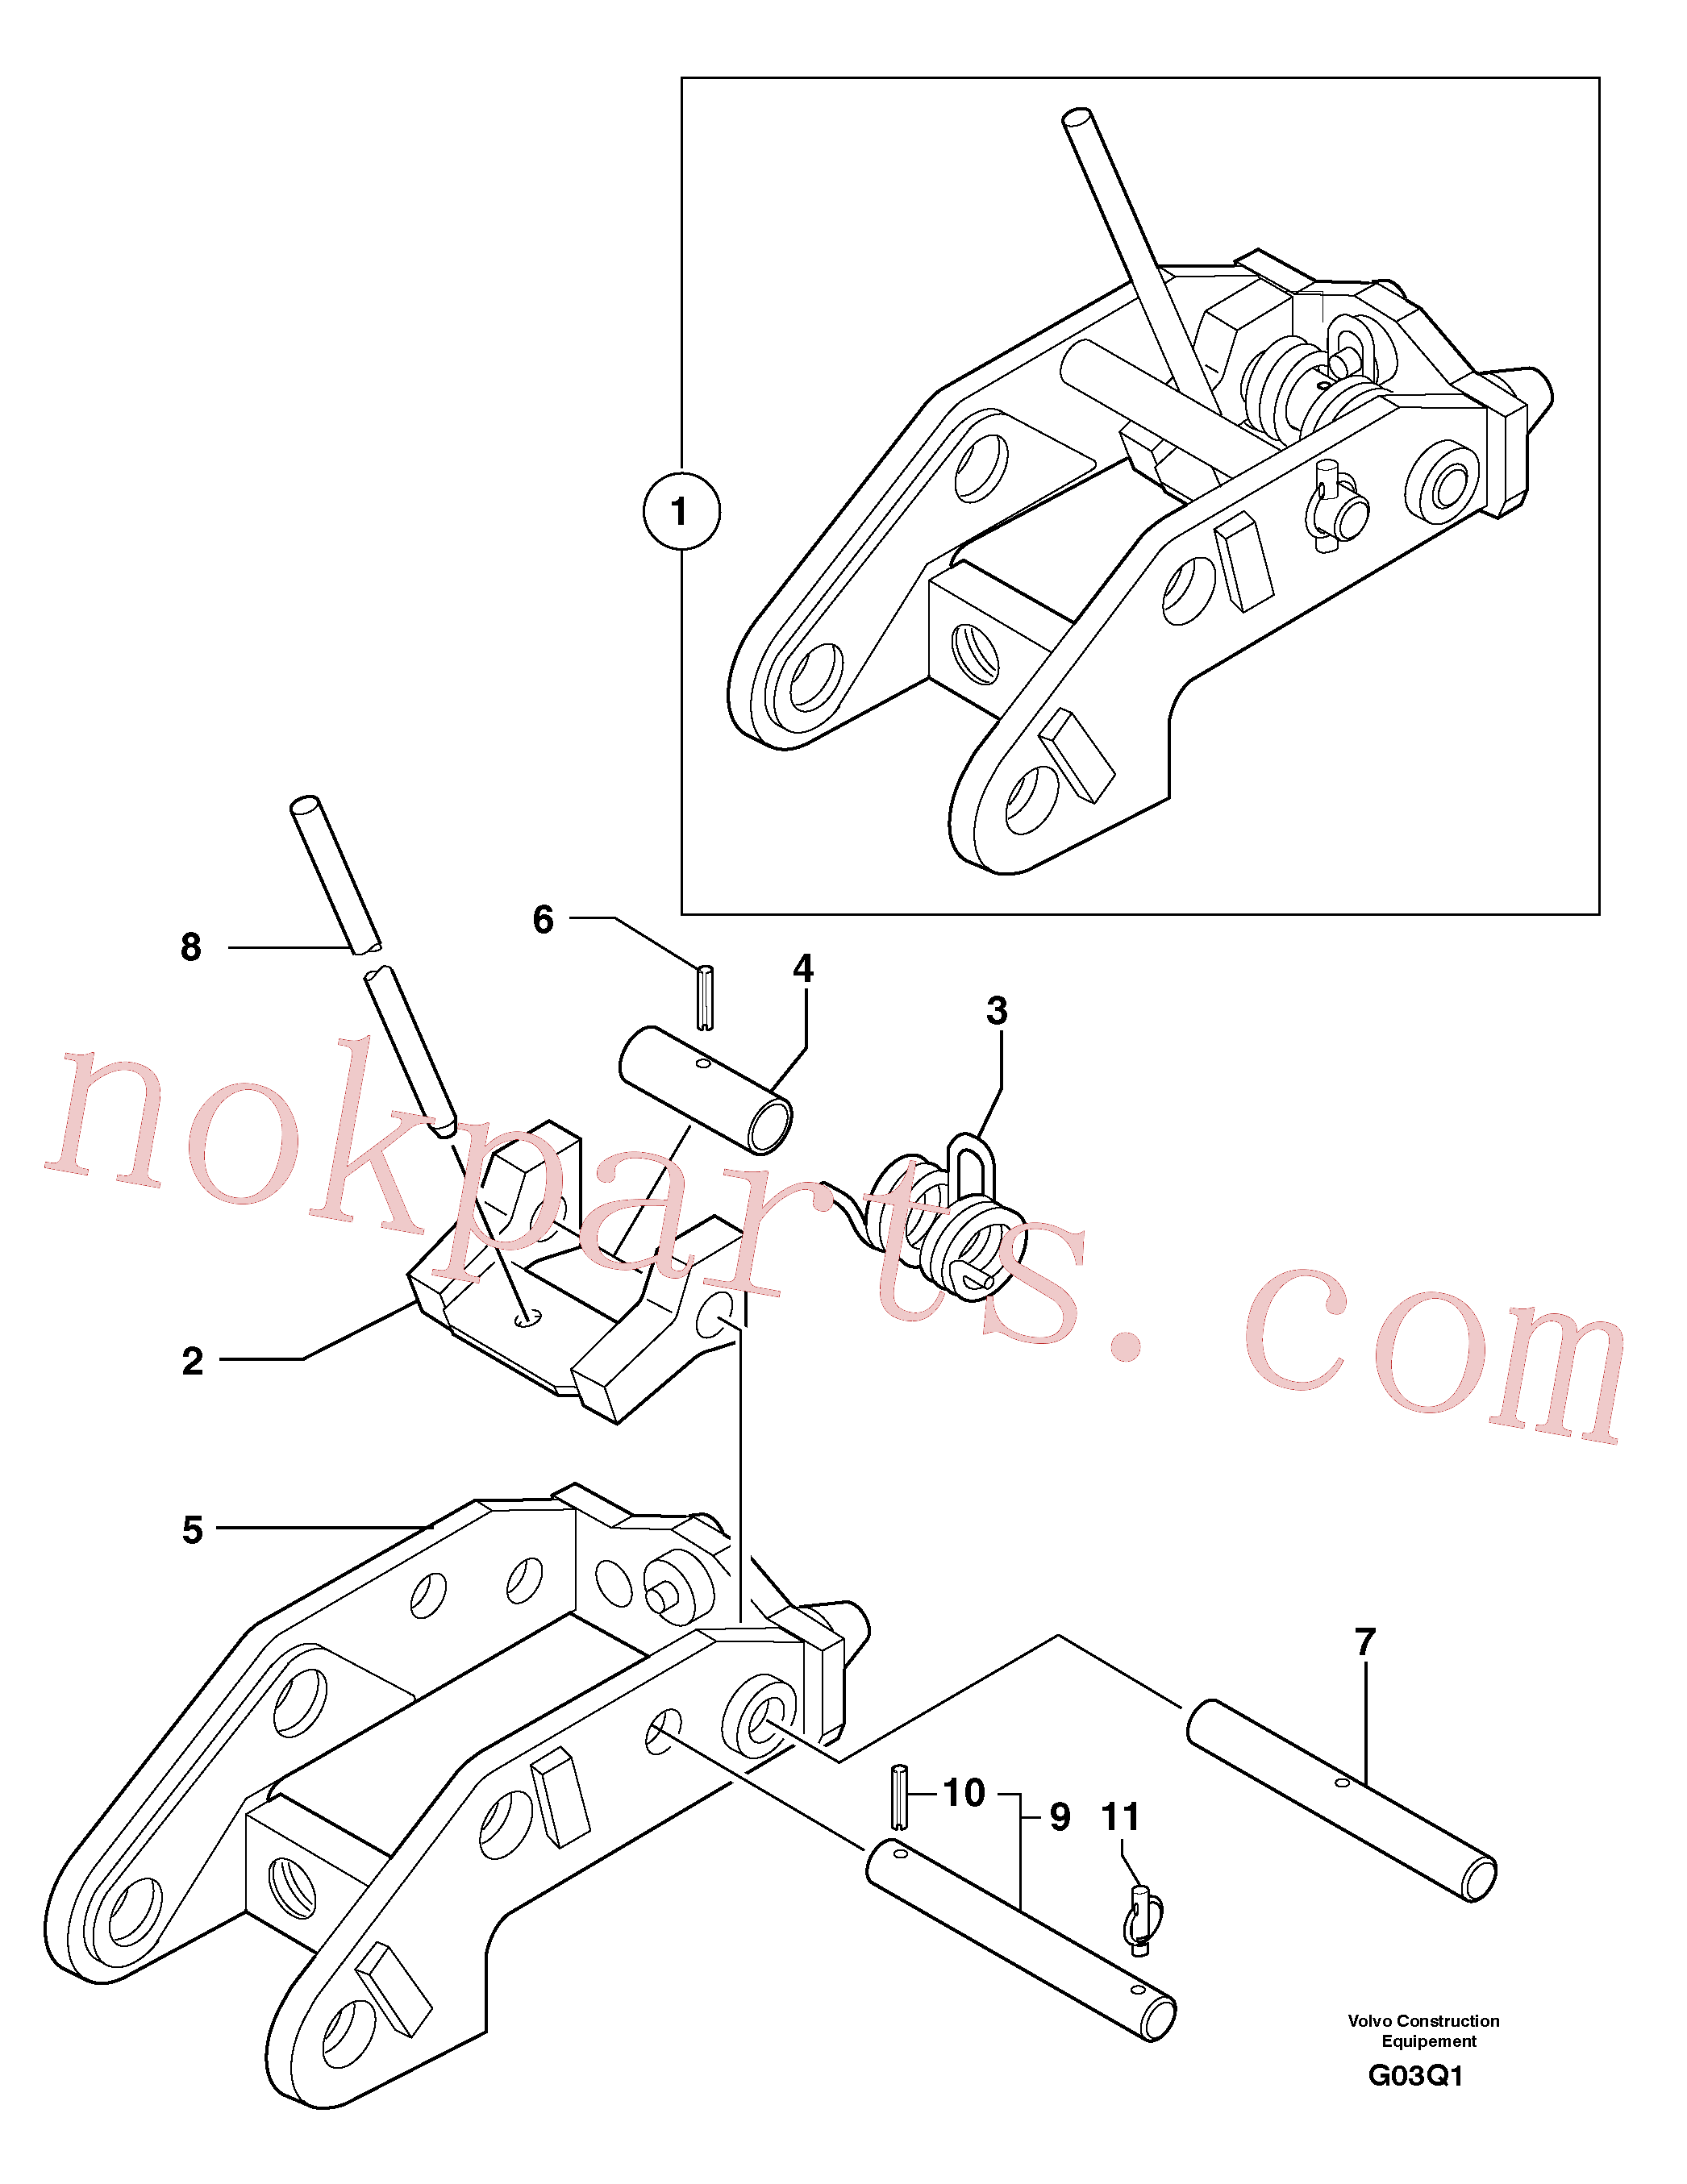 VOE11805859 for Volvo Tool holder / mechanical control(G03Q1 assembly)